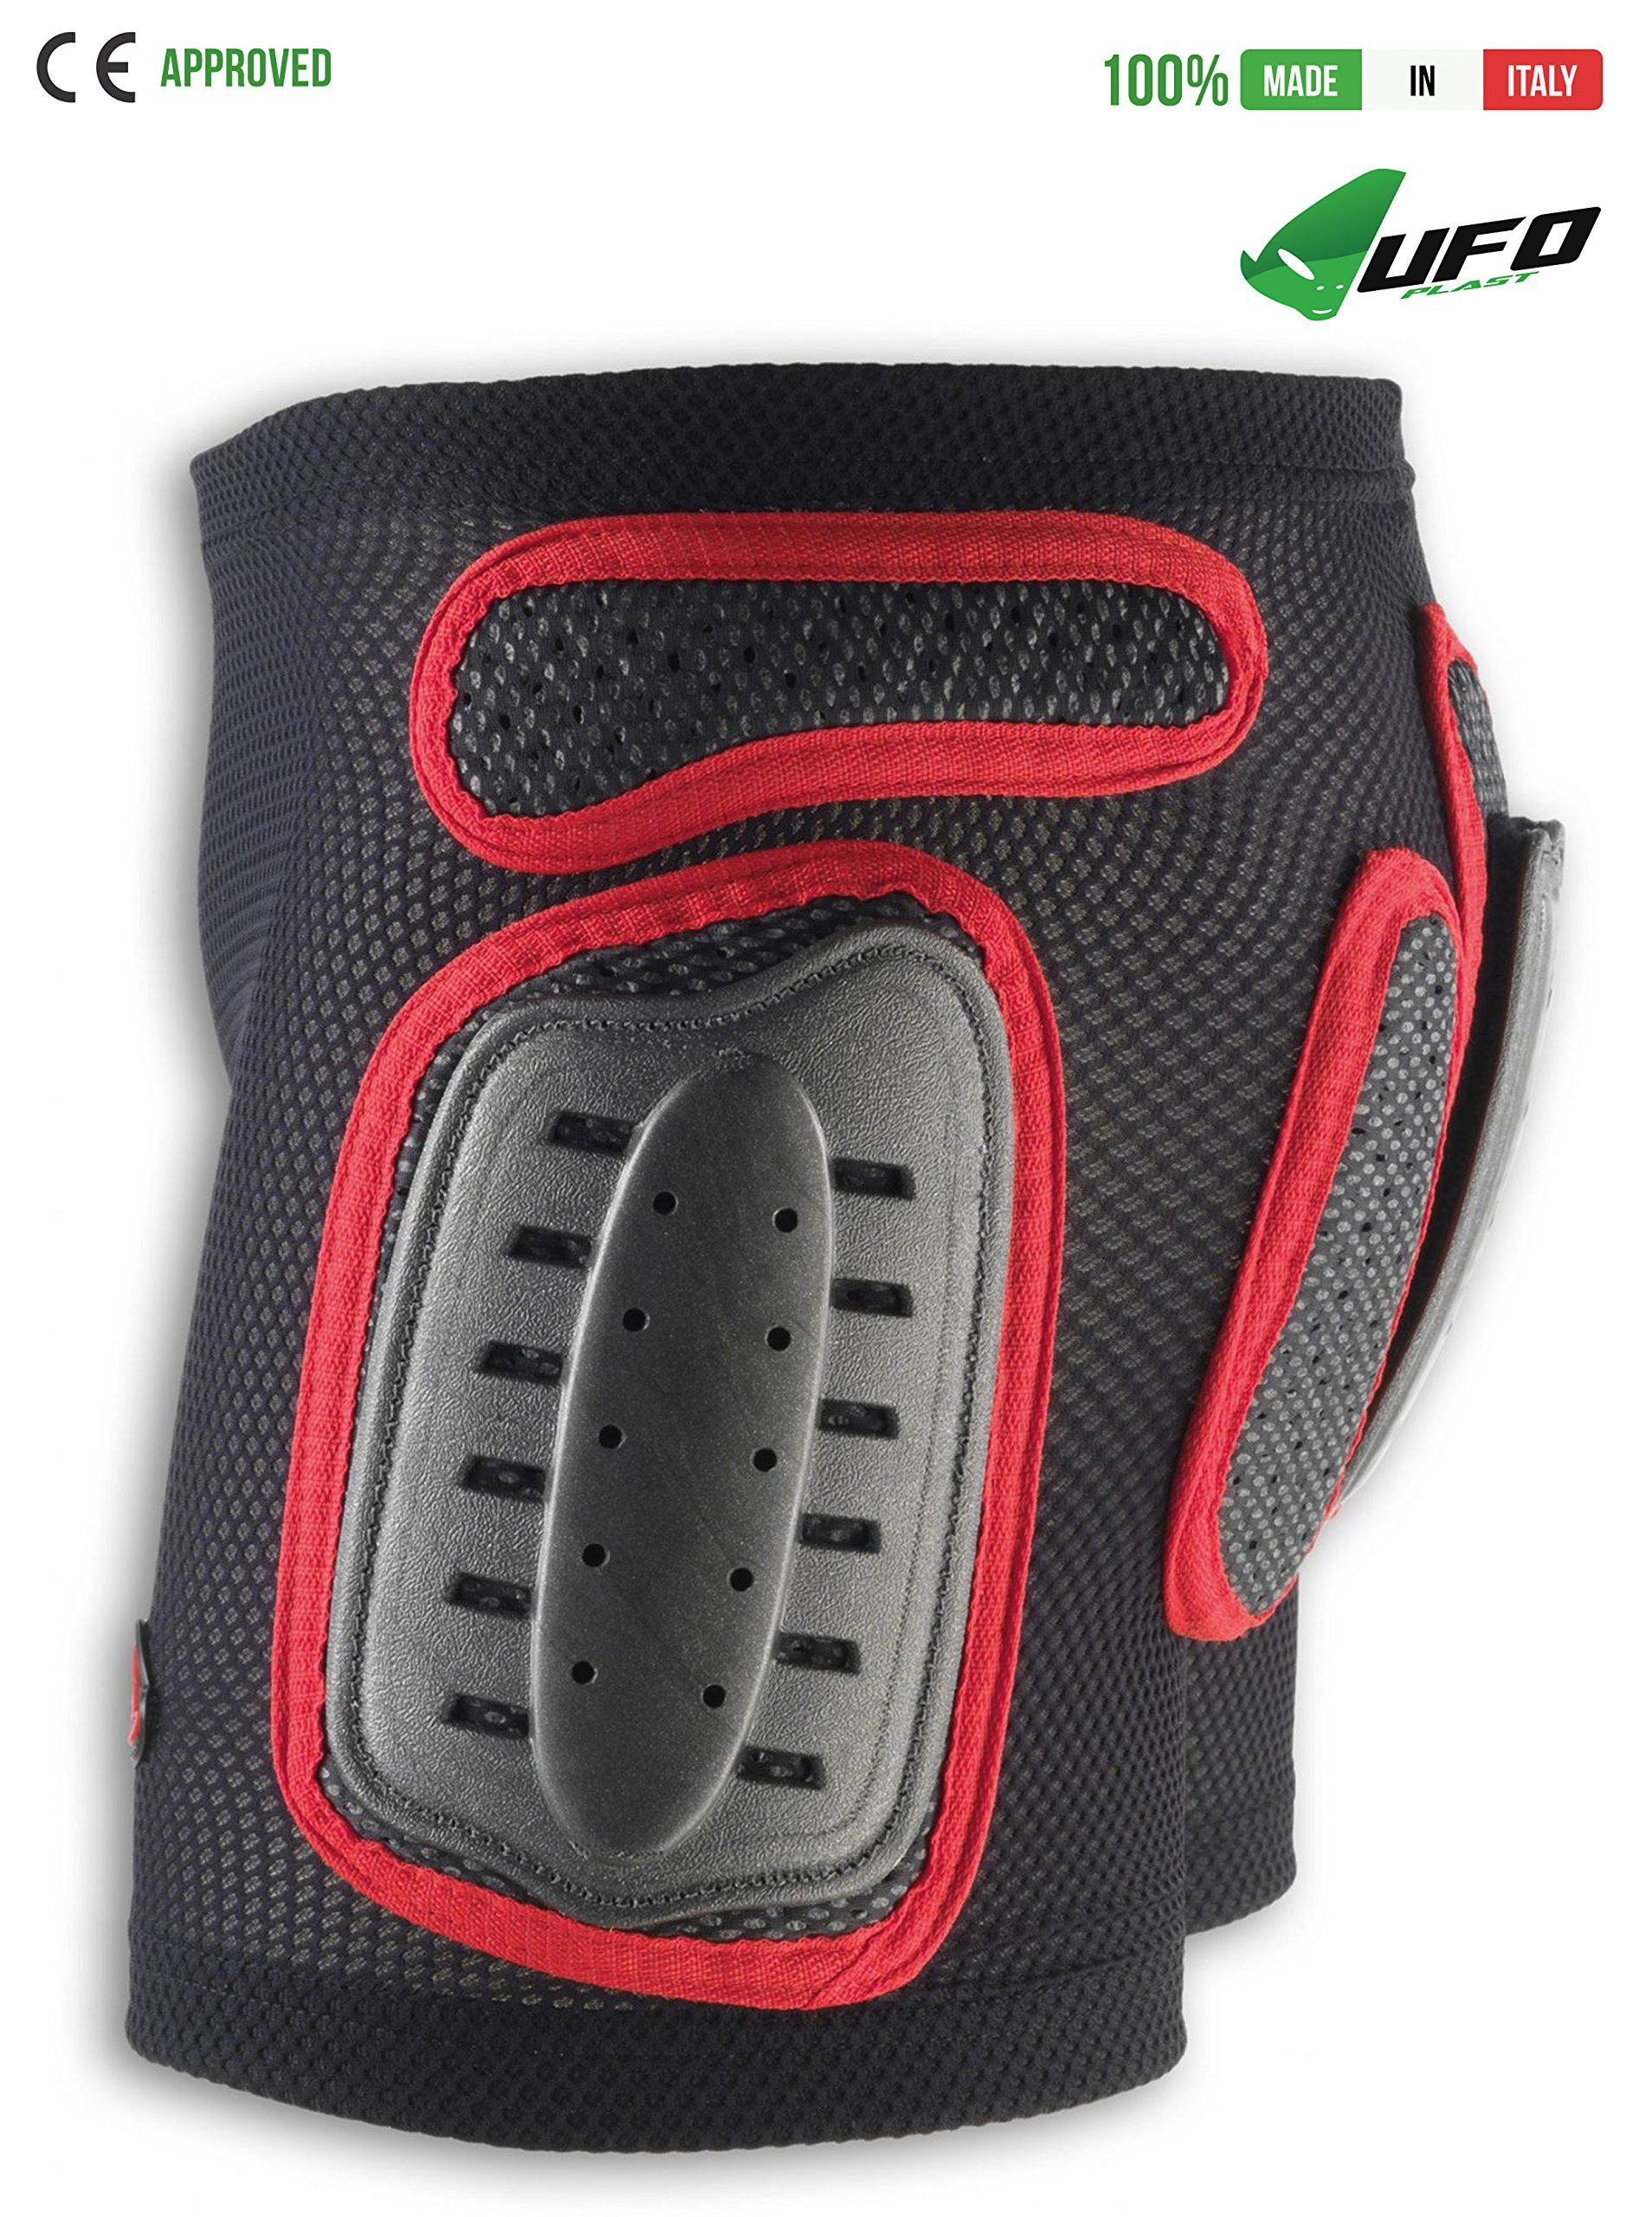 UFO PLAST Made in Italy PI04158 Plastic Padded Shorts for Kids/ Removable Back Protection / Airnet Material / Hip, Side Protection Ergonomic Design for Free Movements / Size: S / Color: Black with Red